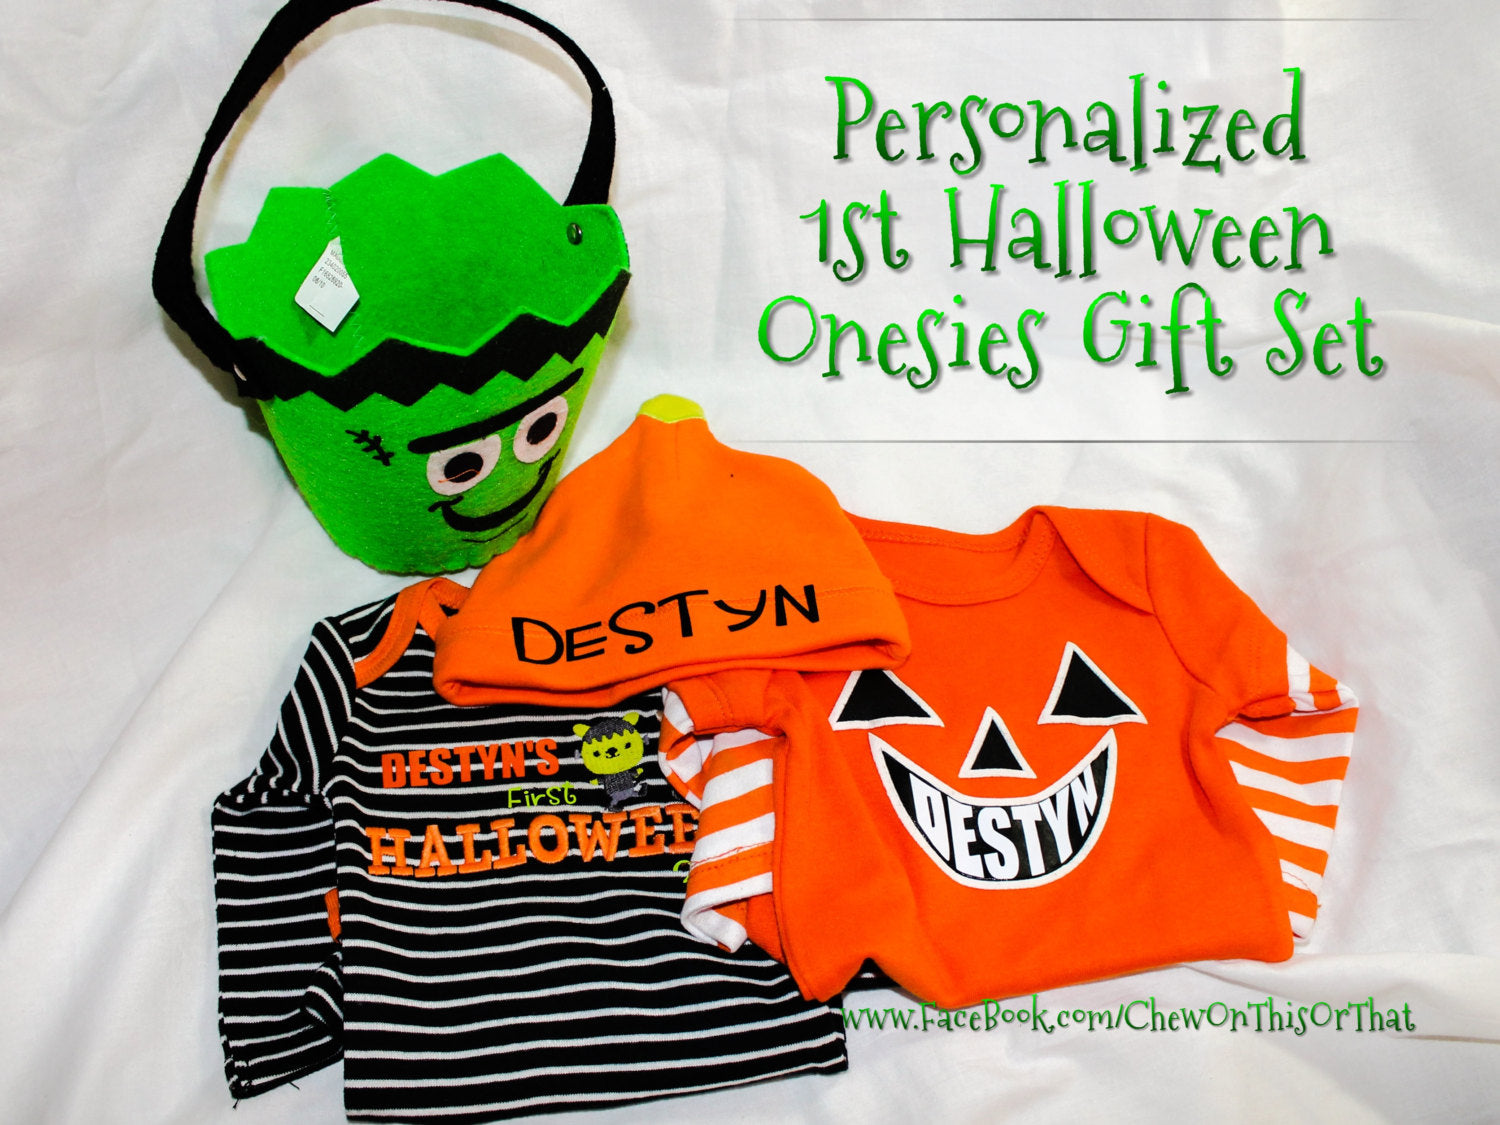 ff07008ea ... Baby's First Halloween Personalized Jack O Lantern Costume Onesie with Black  Sleeves, Bodysuit, Shirt